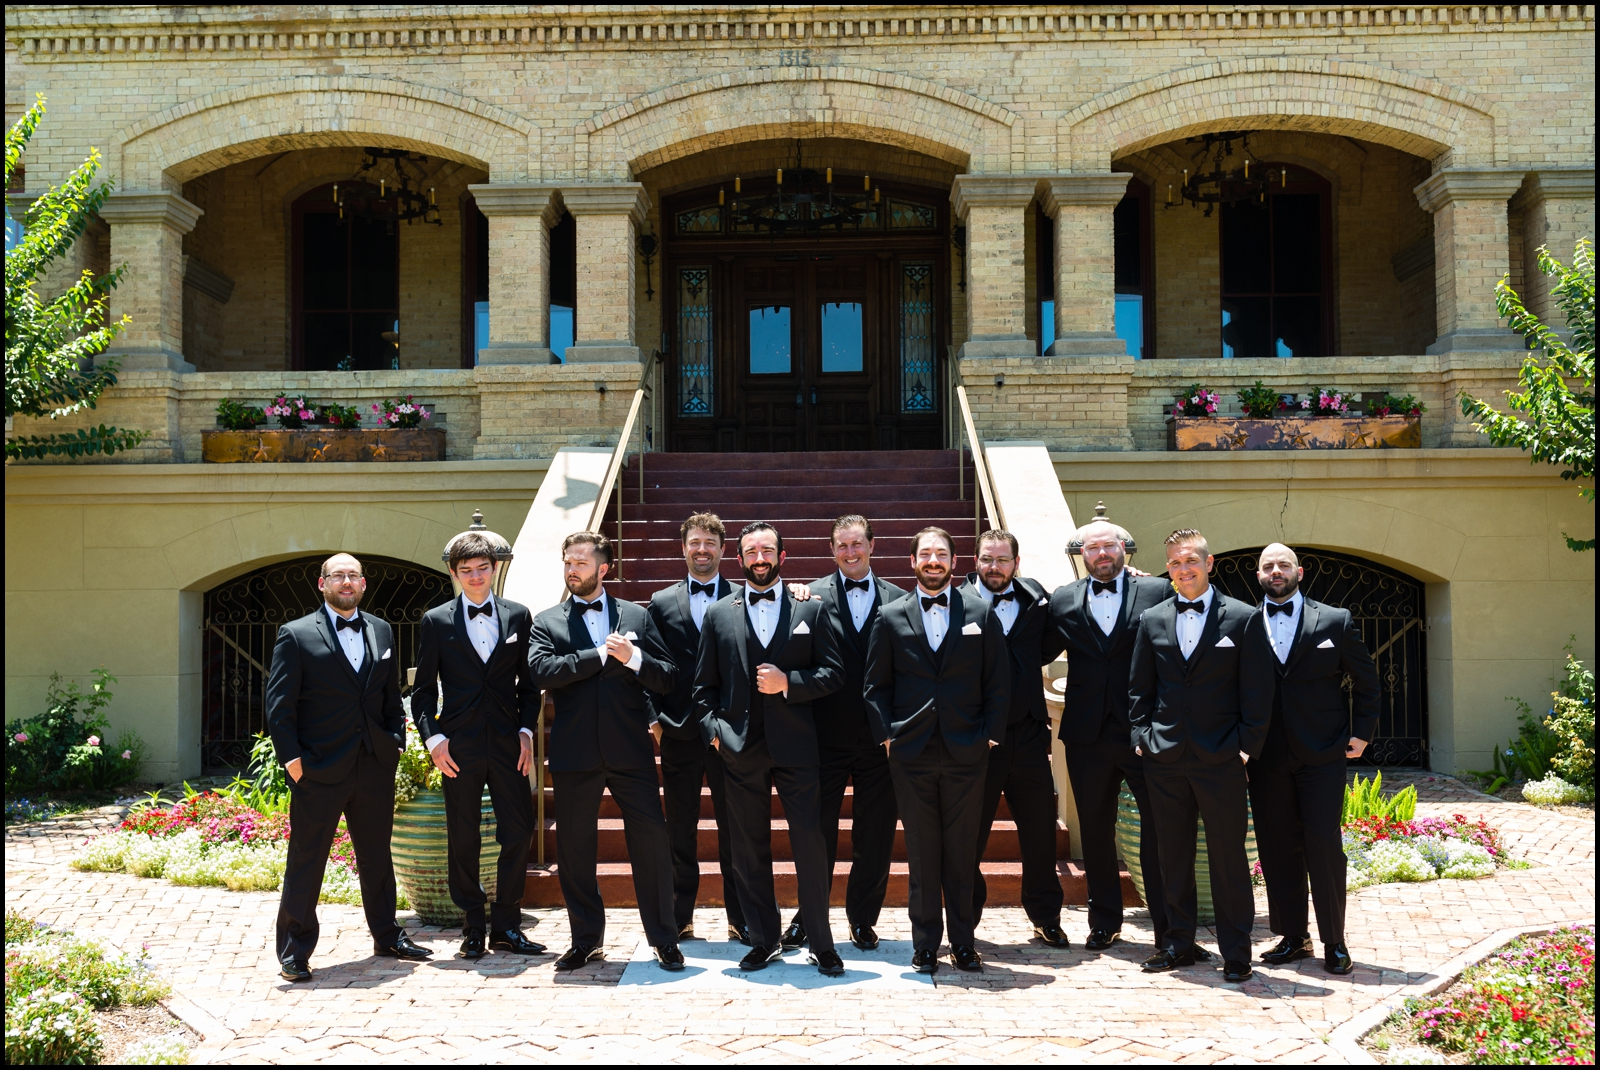 groomsmen at Texas wedding